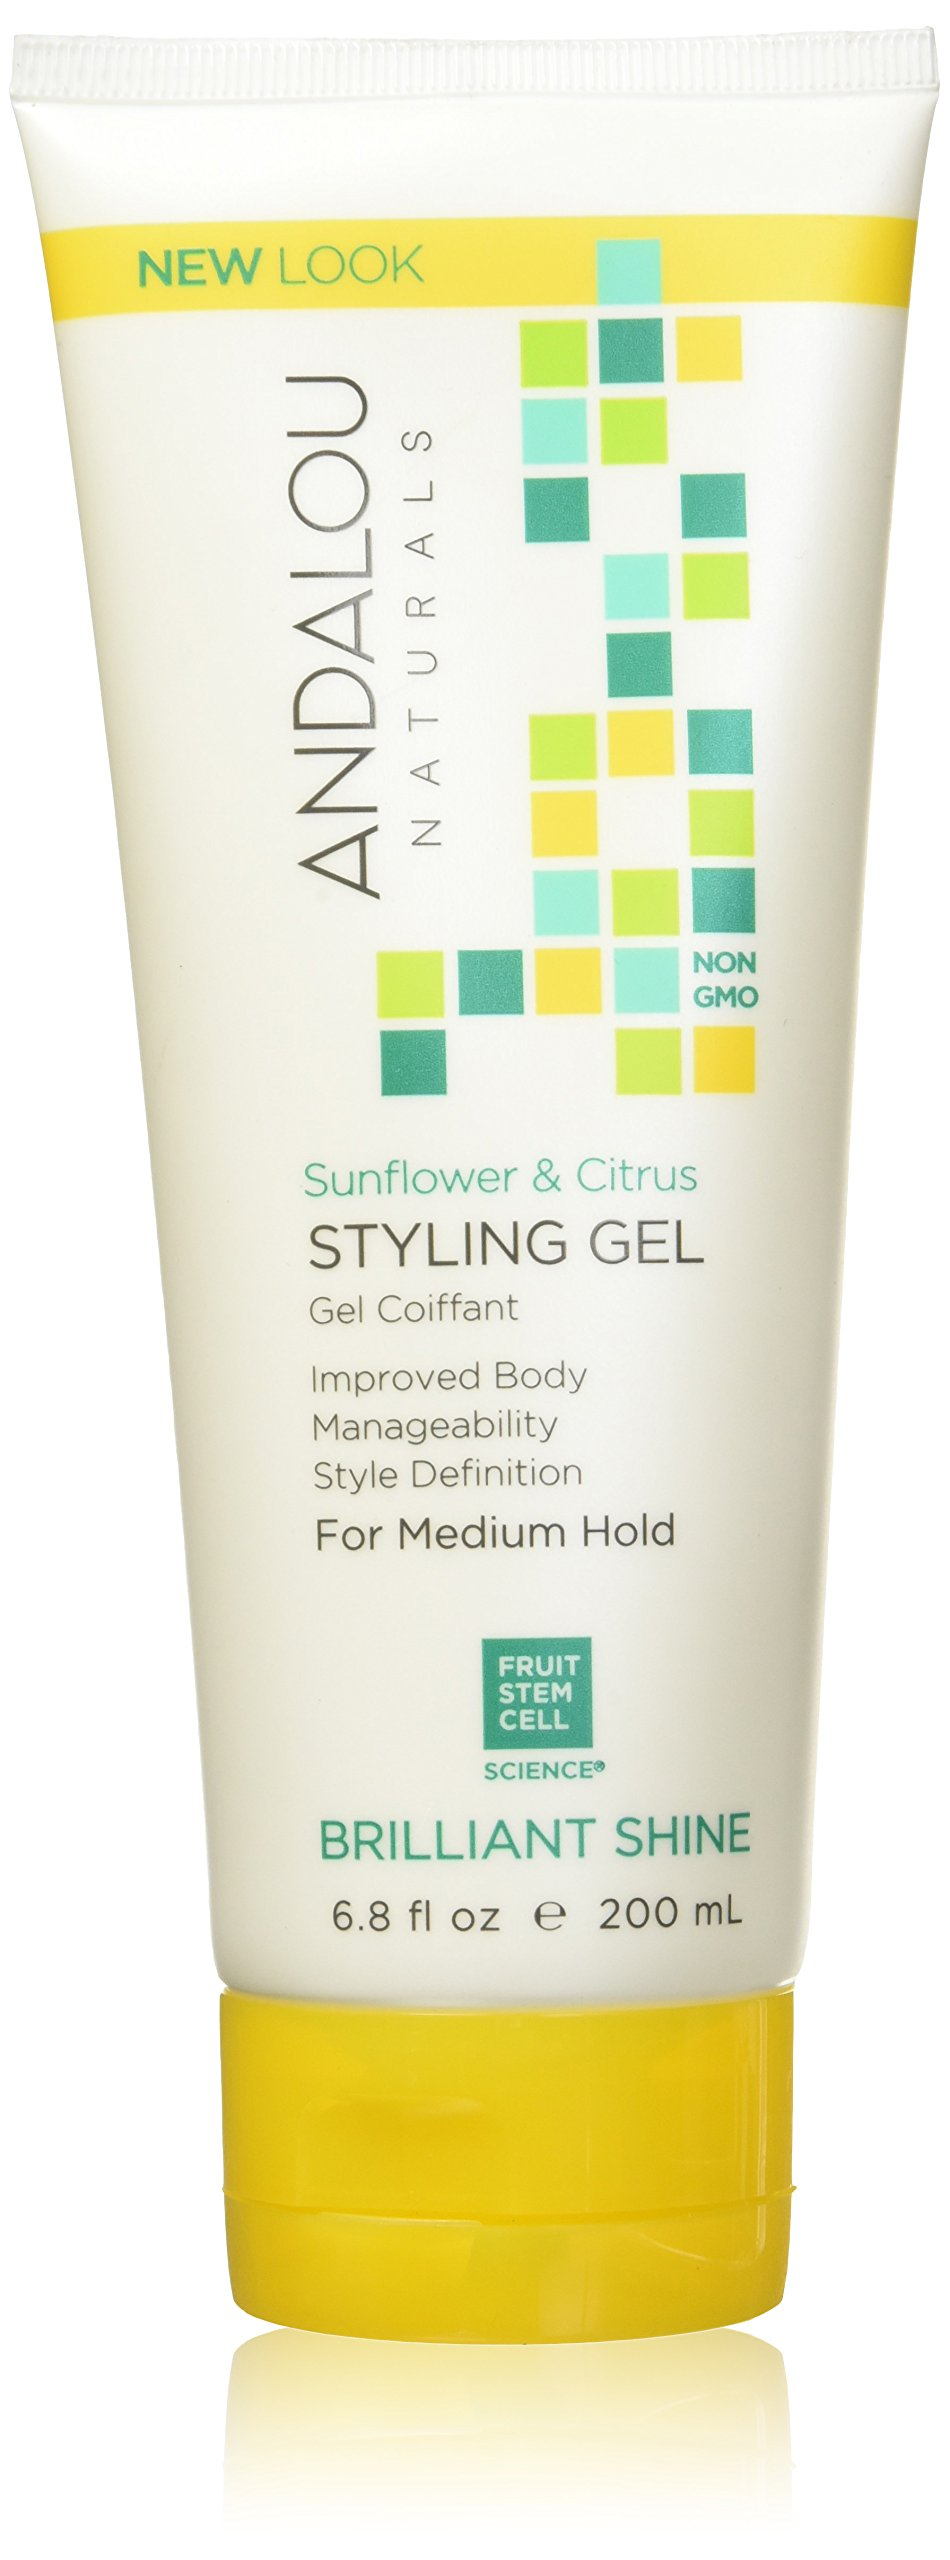 Andalou Naturals Sunflower & Citrus Brilliant Shine Styling Gel, 6.8 oz, Helps Give Hair Smooth Shine & De-Frizz Split Ends by Andalou Naturals (Image #3)